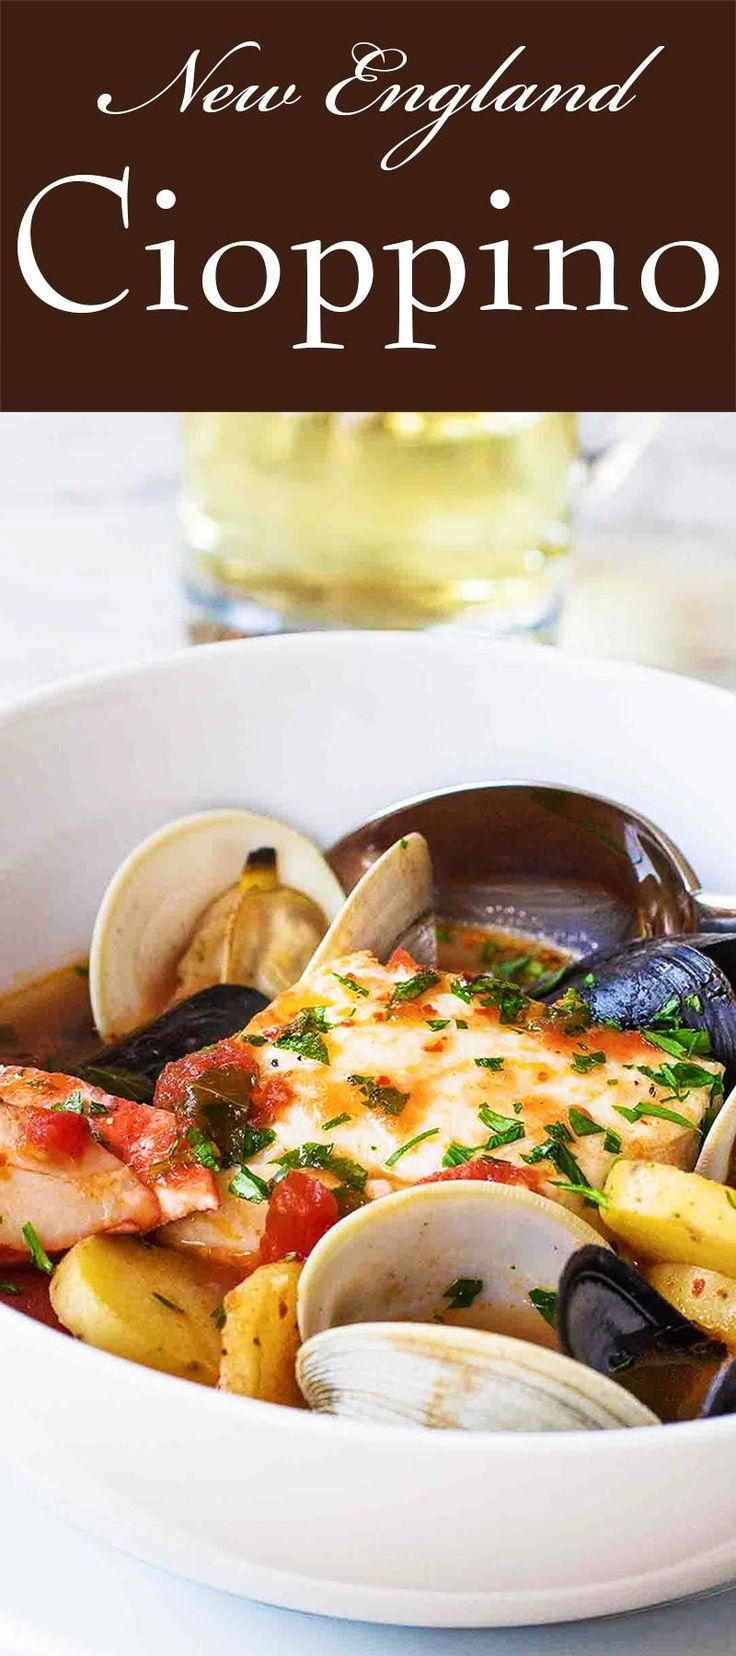 New England Cioppino seafood stew with haddock, lobster, clams, and mussels. Perfect for a casual dinner party! #seafoodrecipes